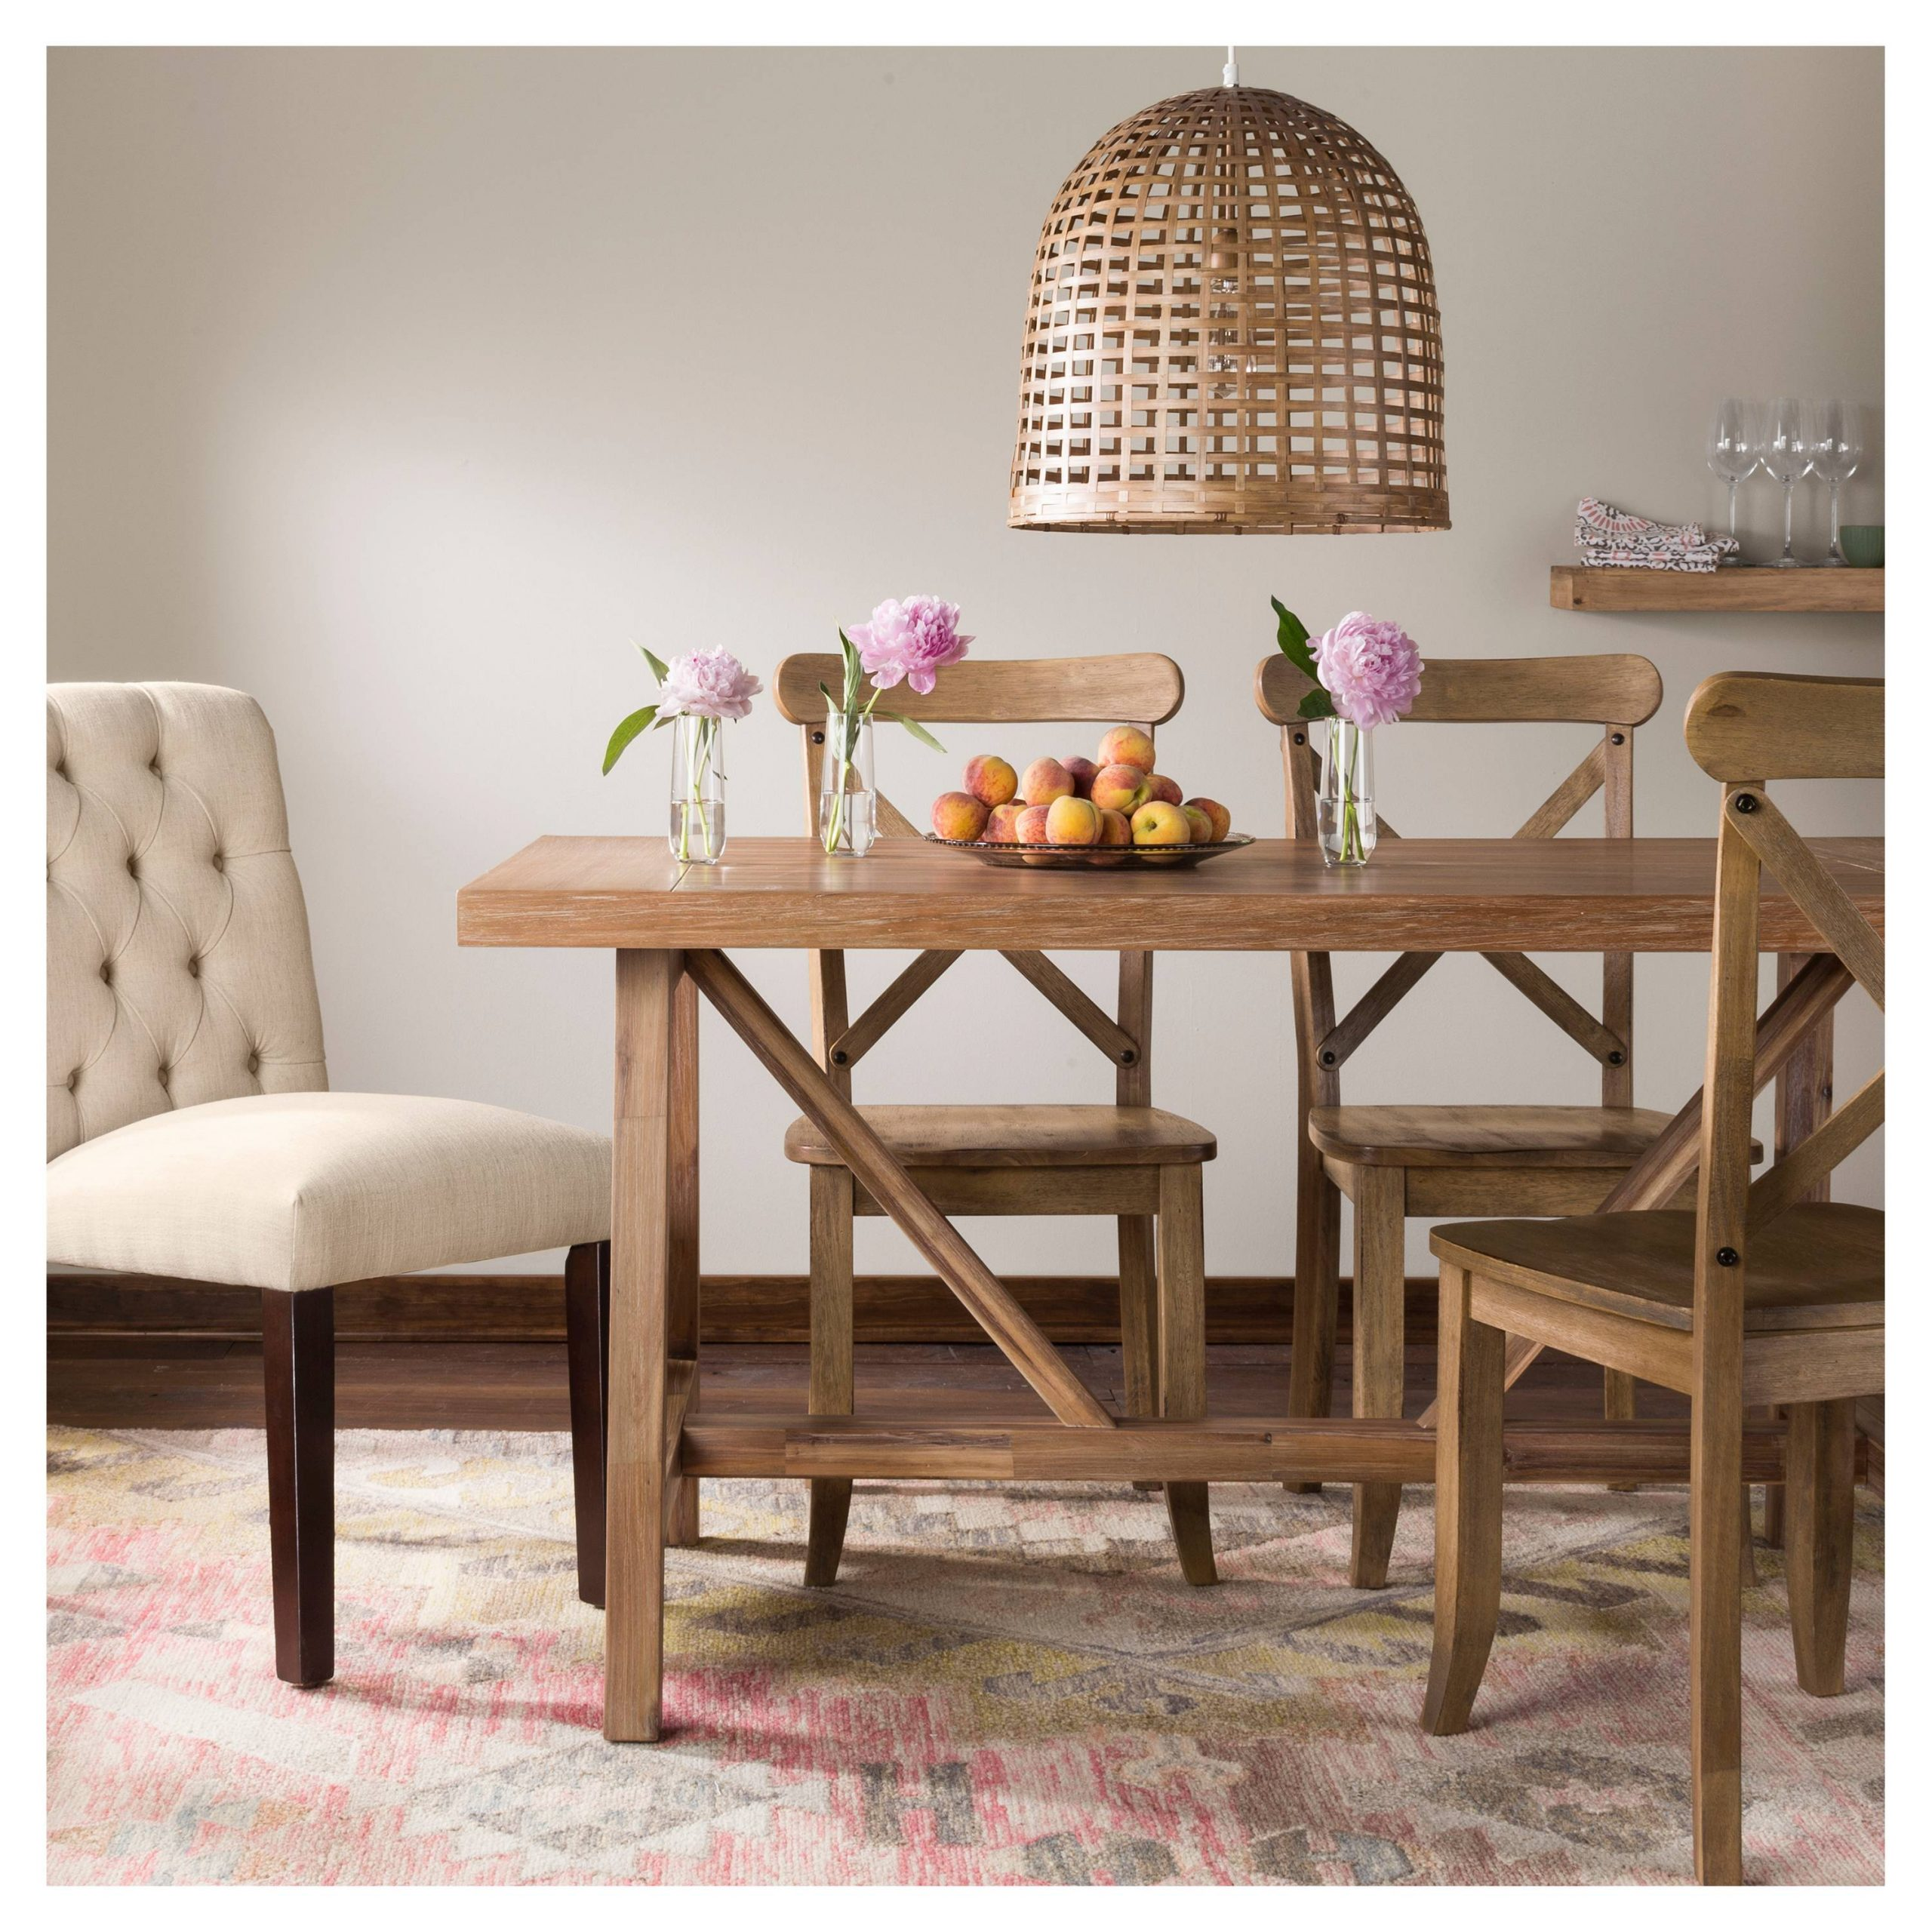 High Or Low // Farmhouse Table Sets – My 100 Year Old Home With Regard To Latest Seadrift Toscana Dining Tables (View 18 of 25)